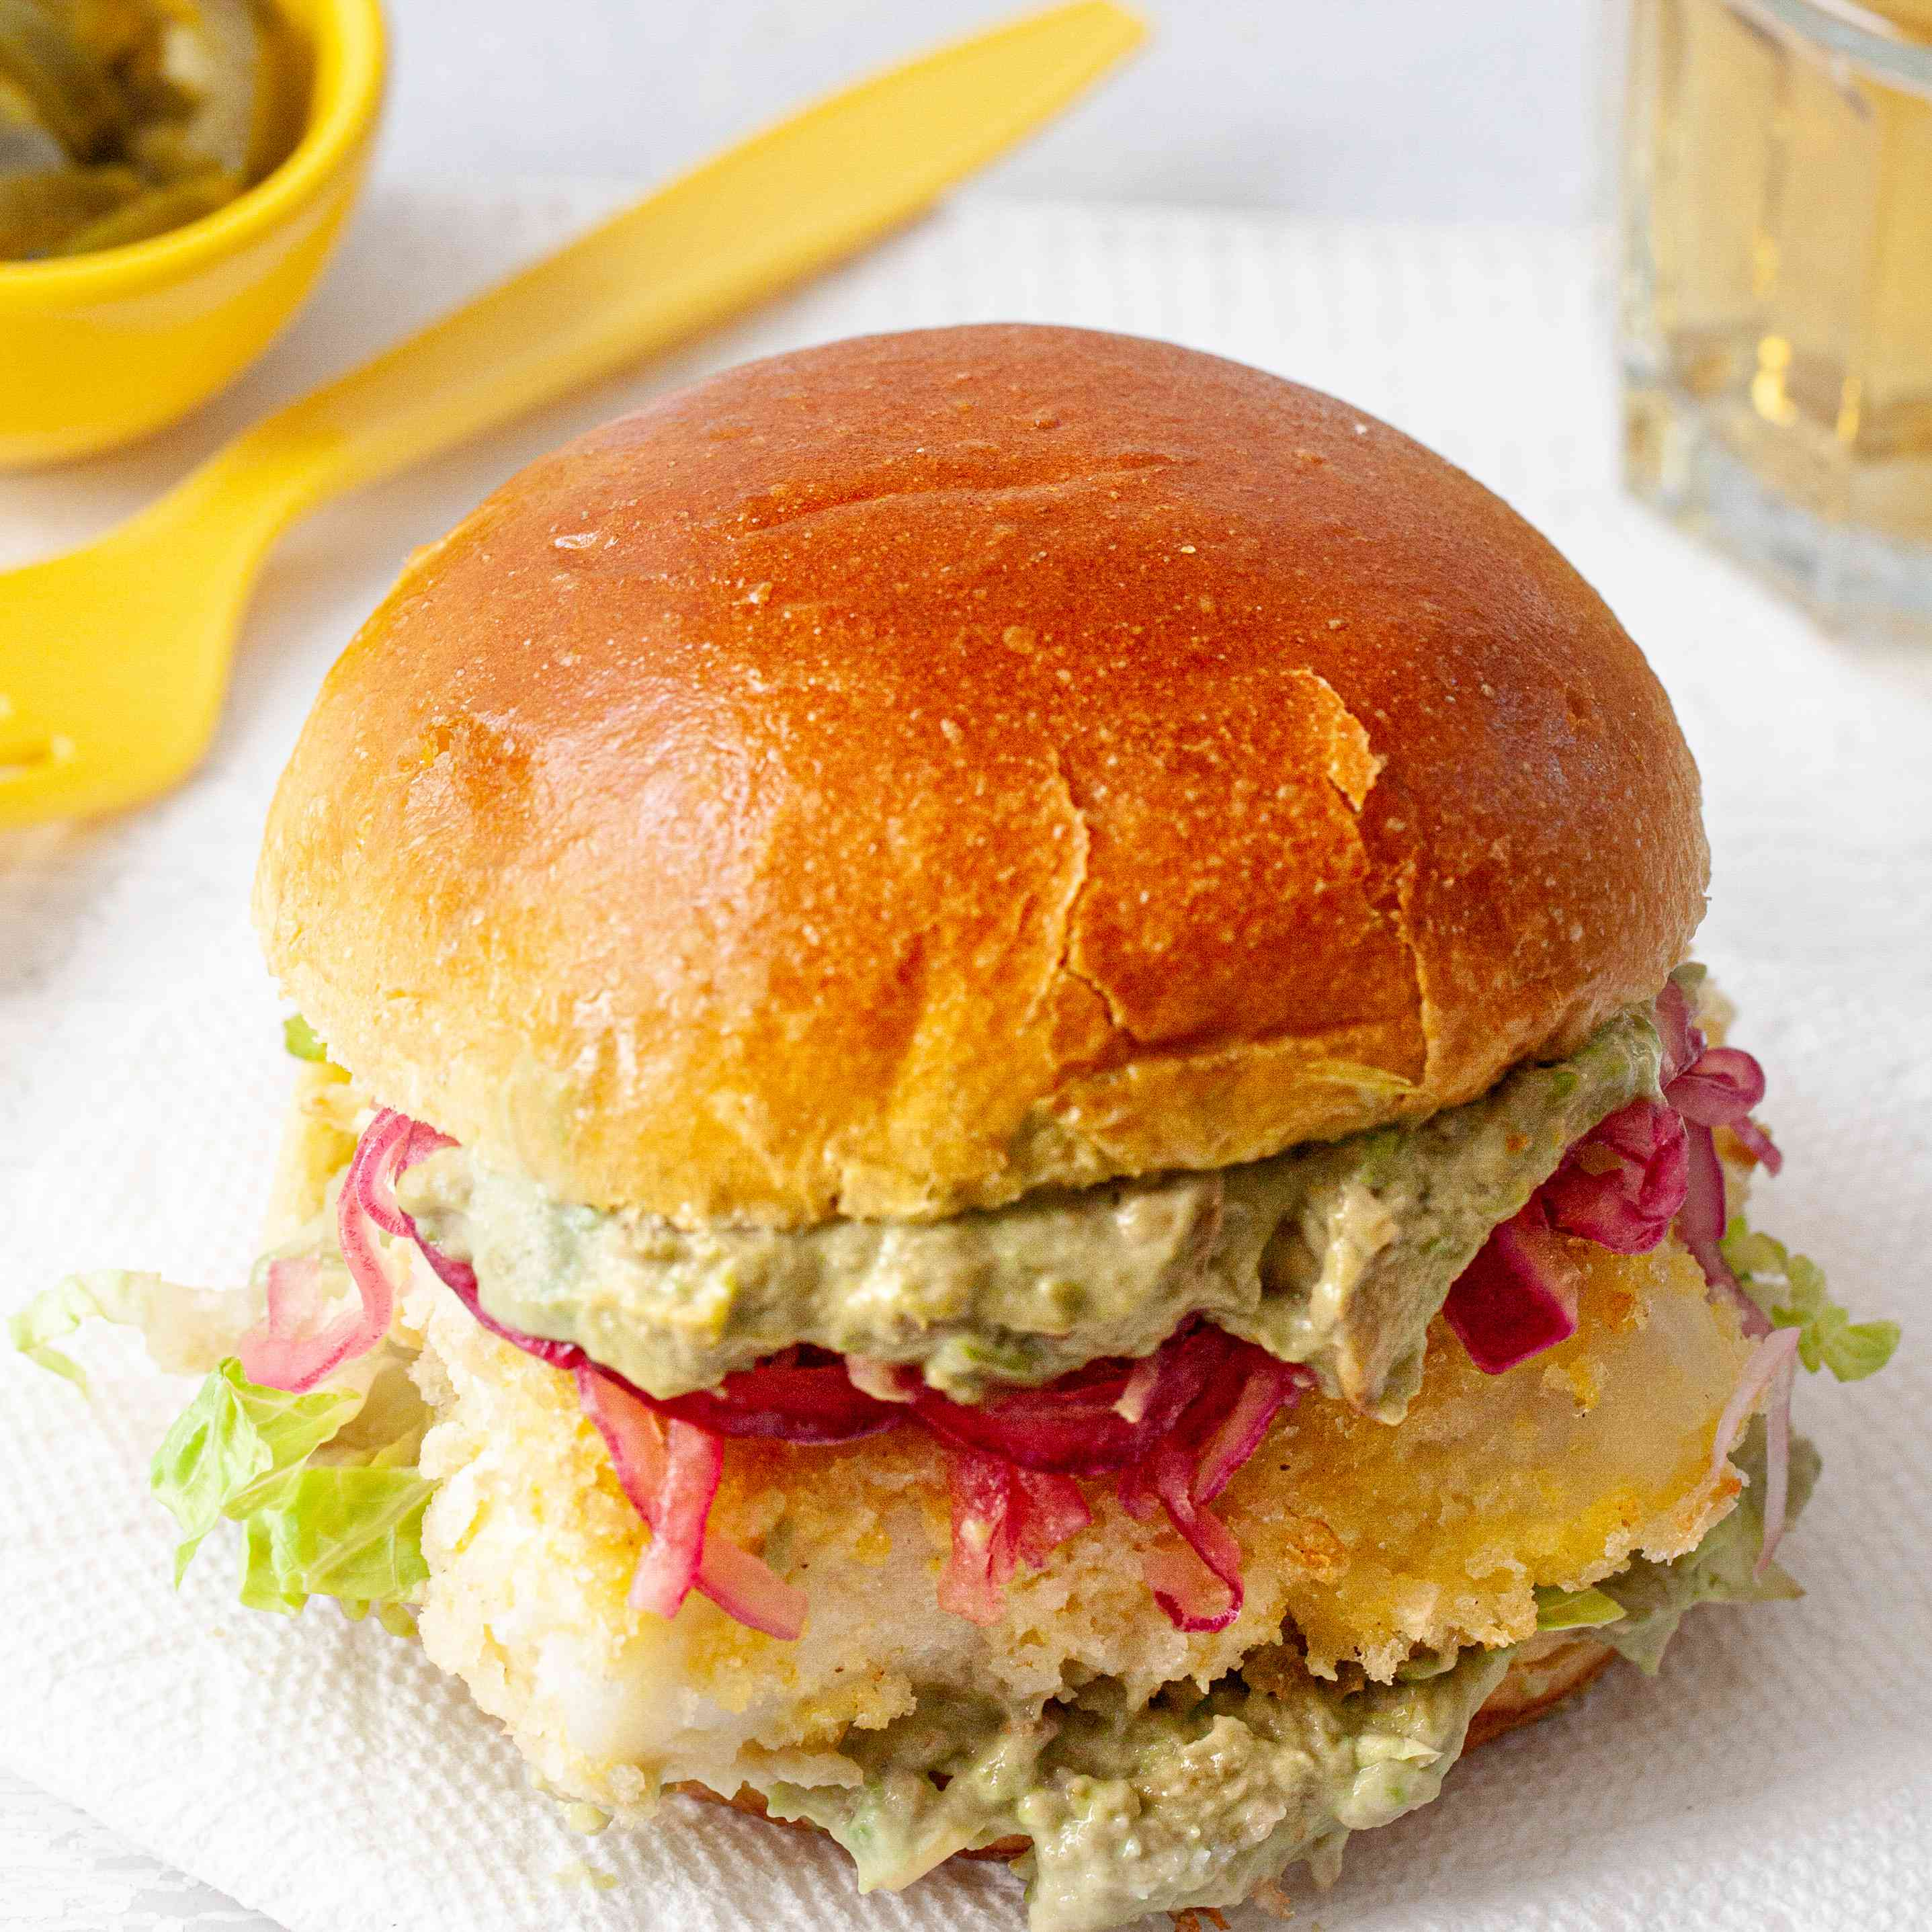 Crispy Oven Baked Fish Sandwiches with Mayo and Tangy Pickled Onions